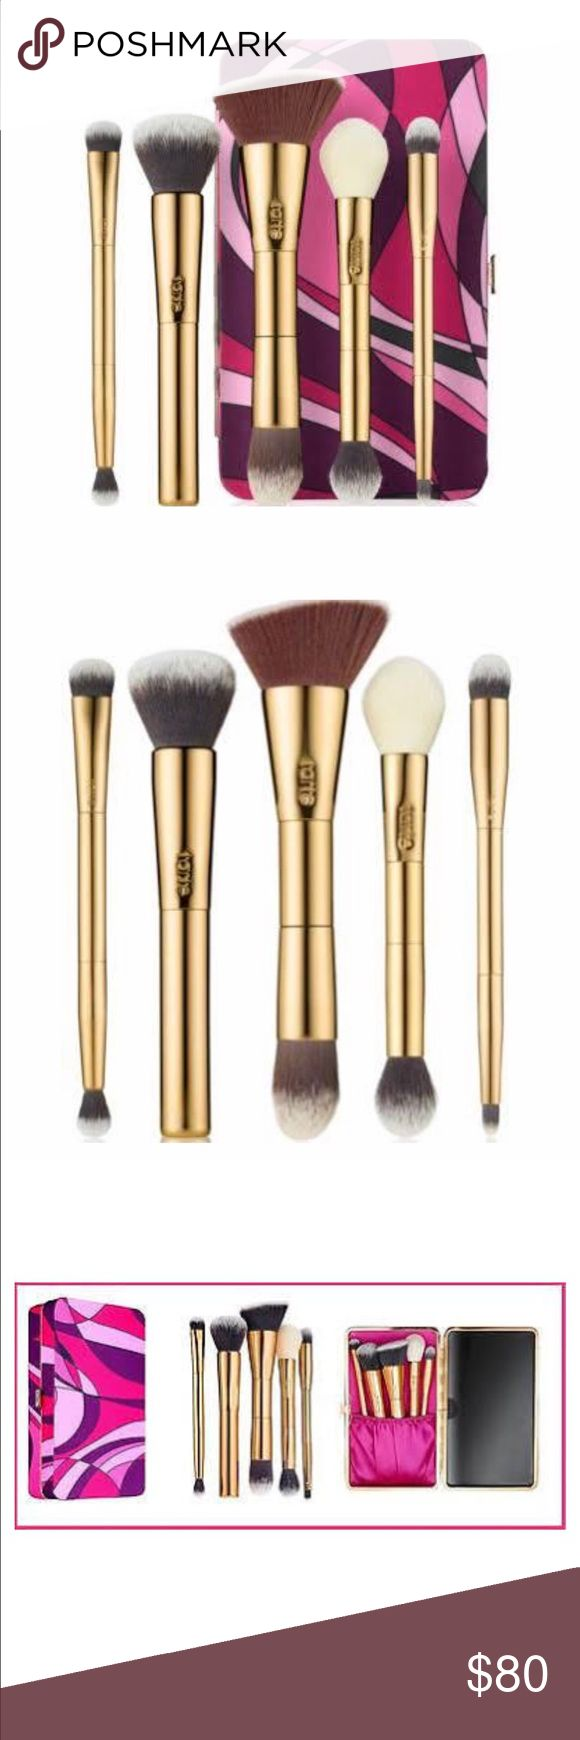 Tarte brush set! 5 brushes, 4 are double ended. Great value set. Sold out everywhere. Comes with case, which can be a customizable palette. All brand new in box. Reasonable offer accepted! tarte Makeup Brushes & Tools